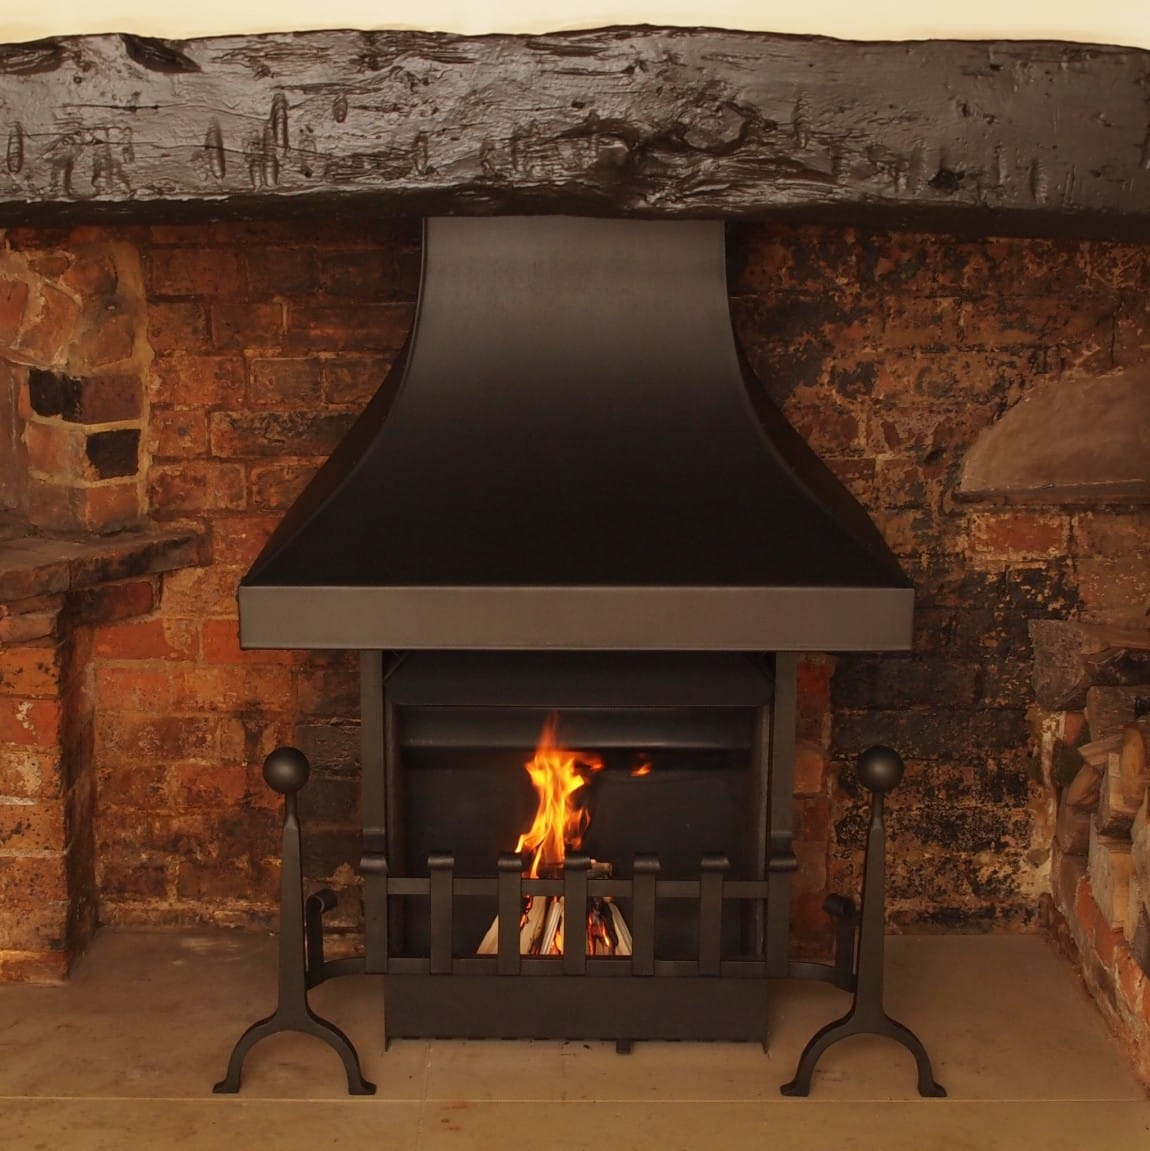 thermovent1 & Efficiency and high performance in open fires - Camelot Real Fires